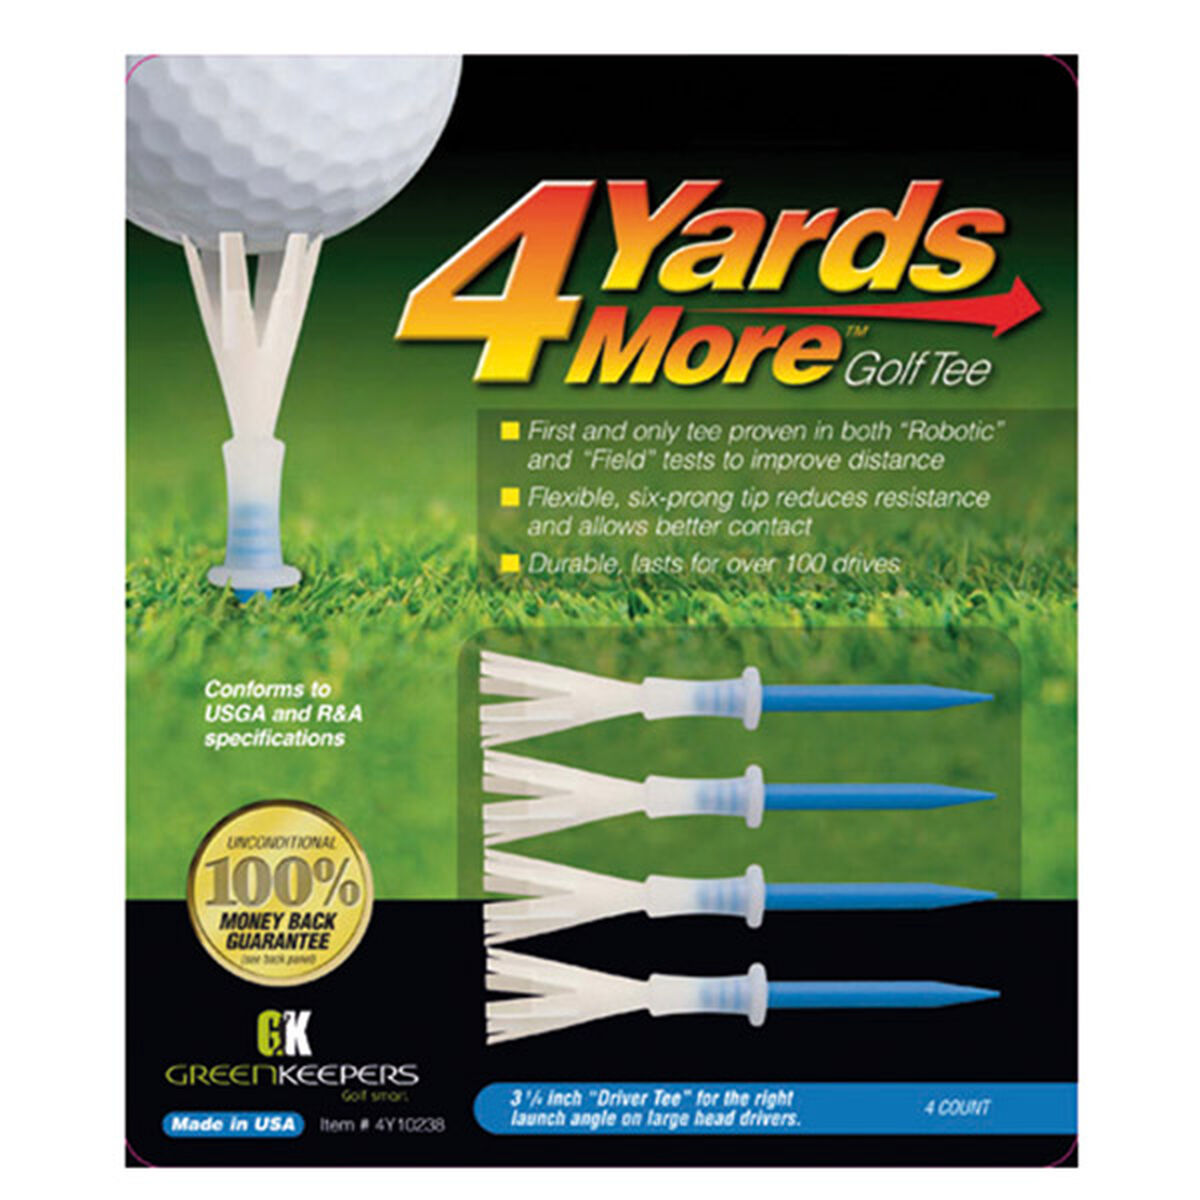 """4 Yards More Blue Pack of 4 Golf Driver Golf Tees, Size: 3 1/4"""", 3 1/4 inches 